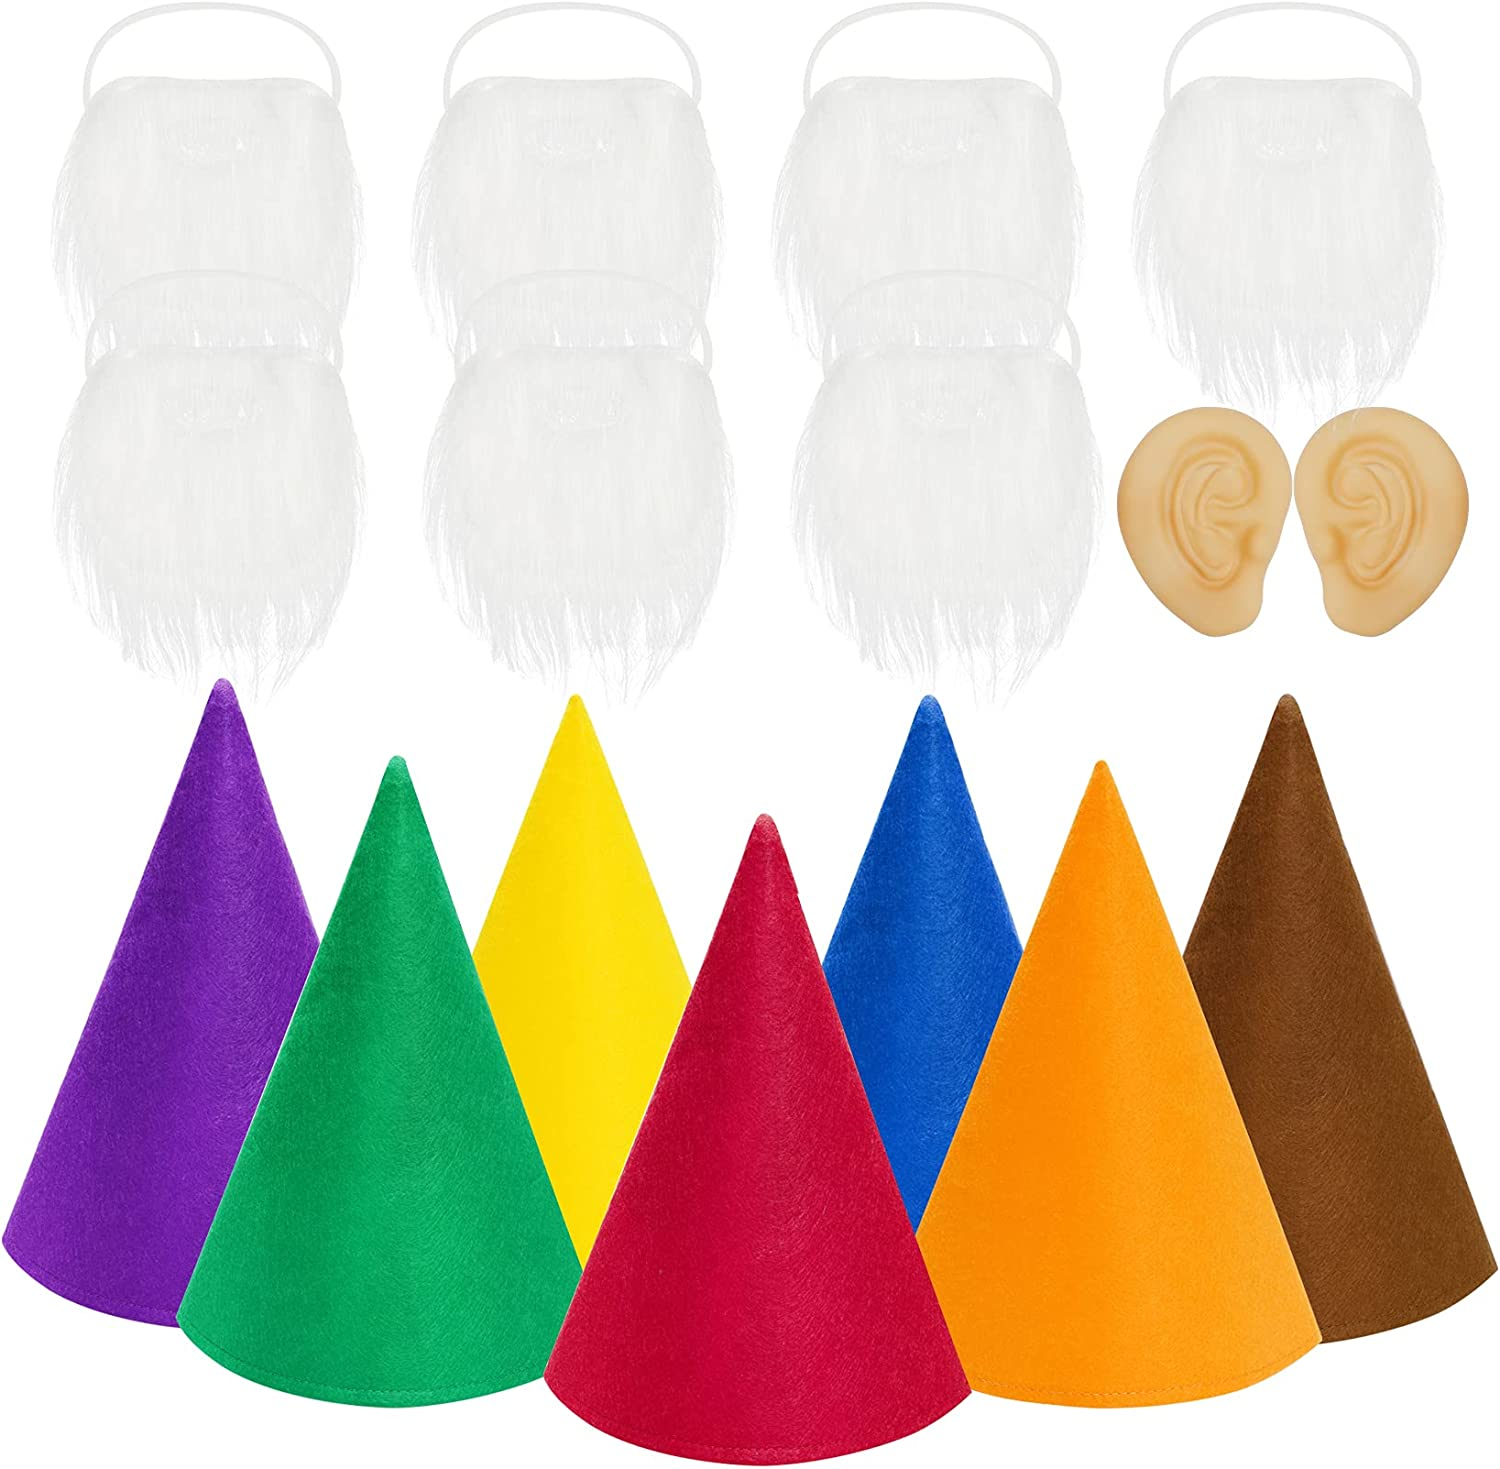 16 Packs Gnome Costume Sets, 7 Pcs Felt Cone Dwarf Hats, 7 Pcs White Fake Beard and 2 Pcs Fake Ears for Halloween Christmas Party Cosplay